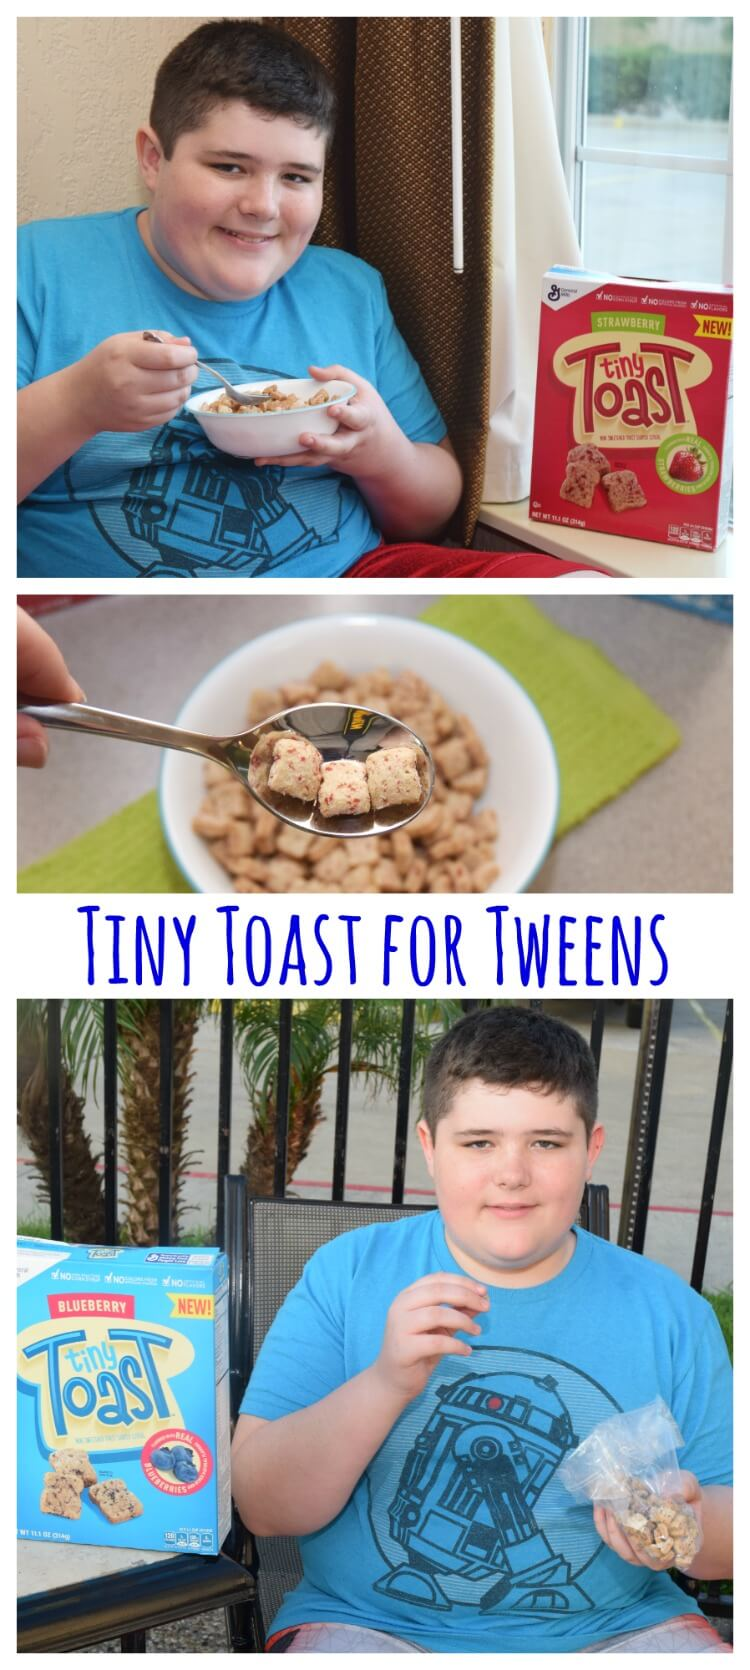 Check out @GeneralMills #TinyToastCereal at #Kroger for your teens & tweens! #ad #food